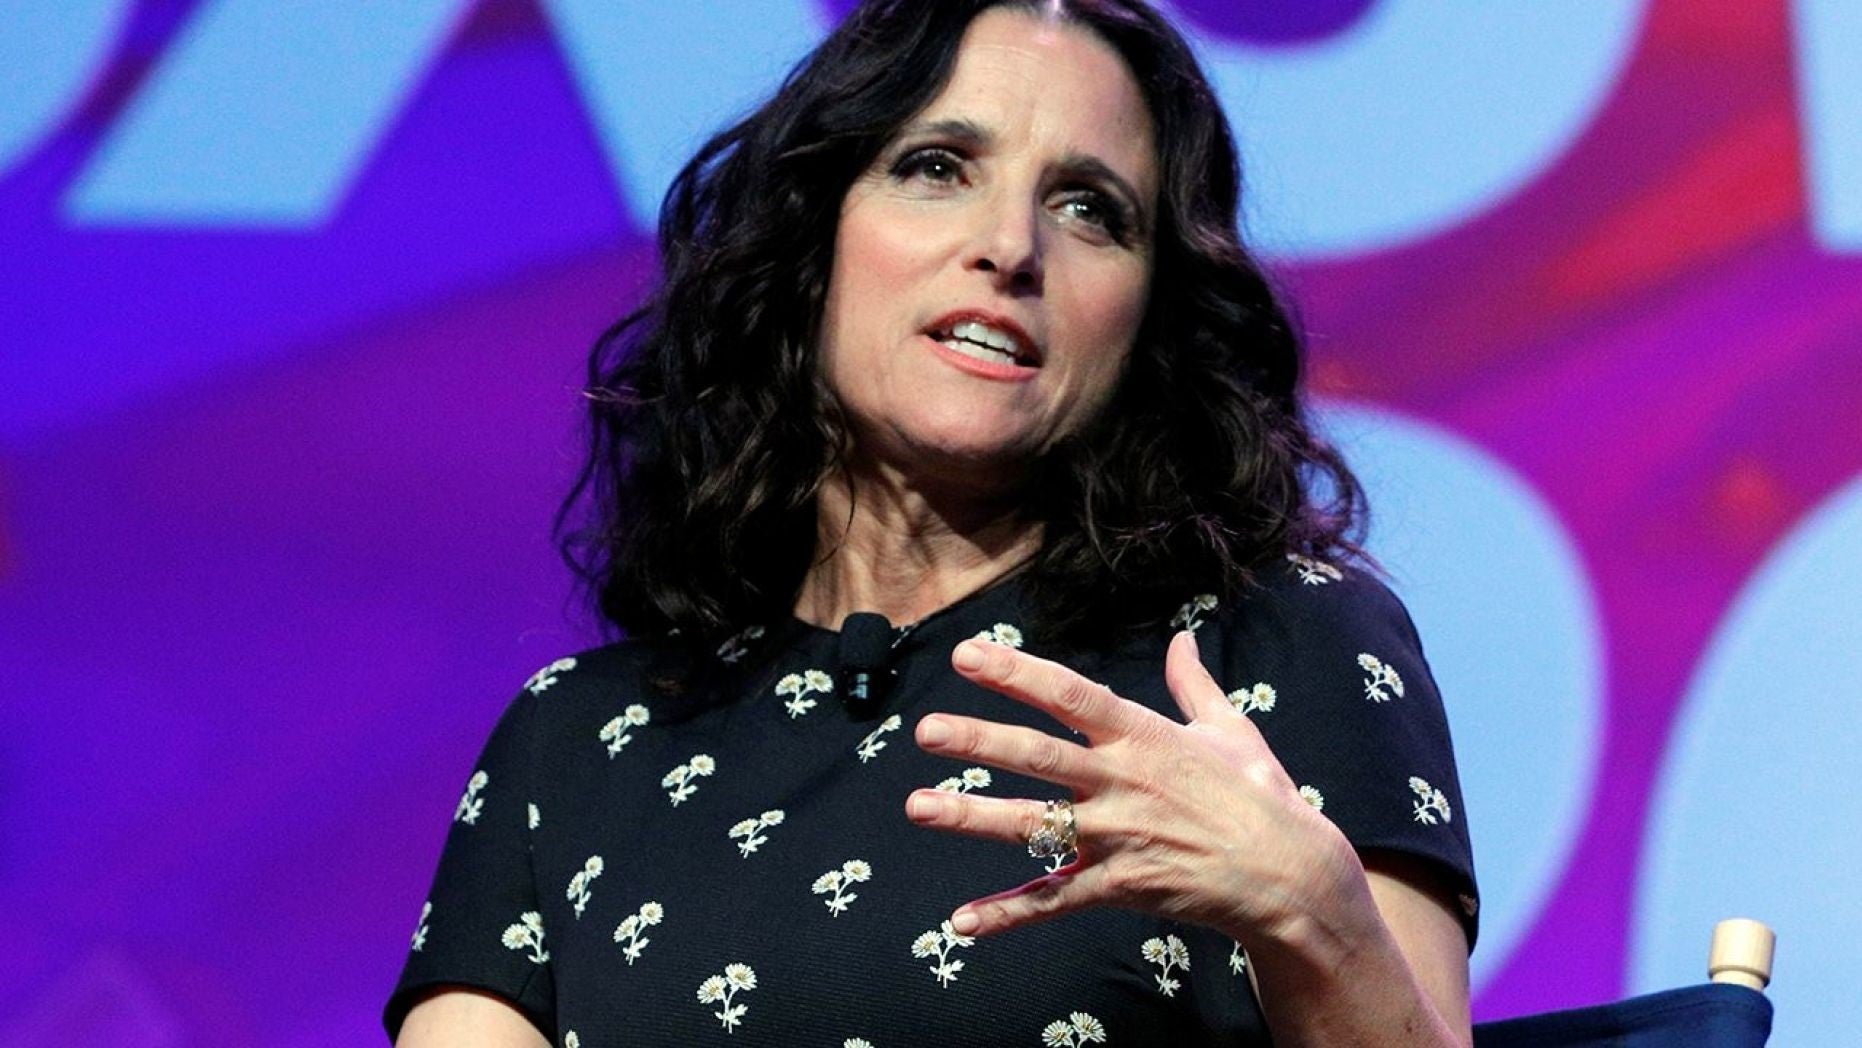 Julia Louis-Dreyfus opened up about her sister's death for the first time.